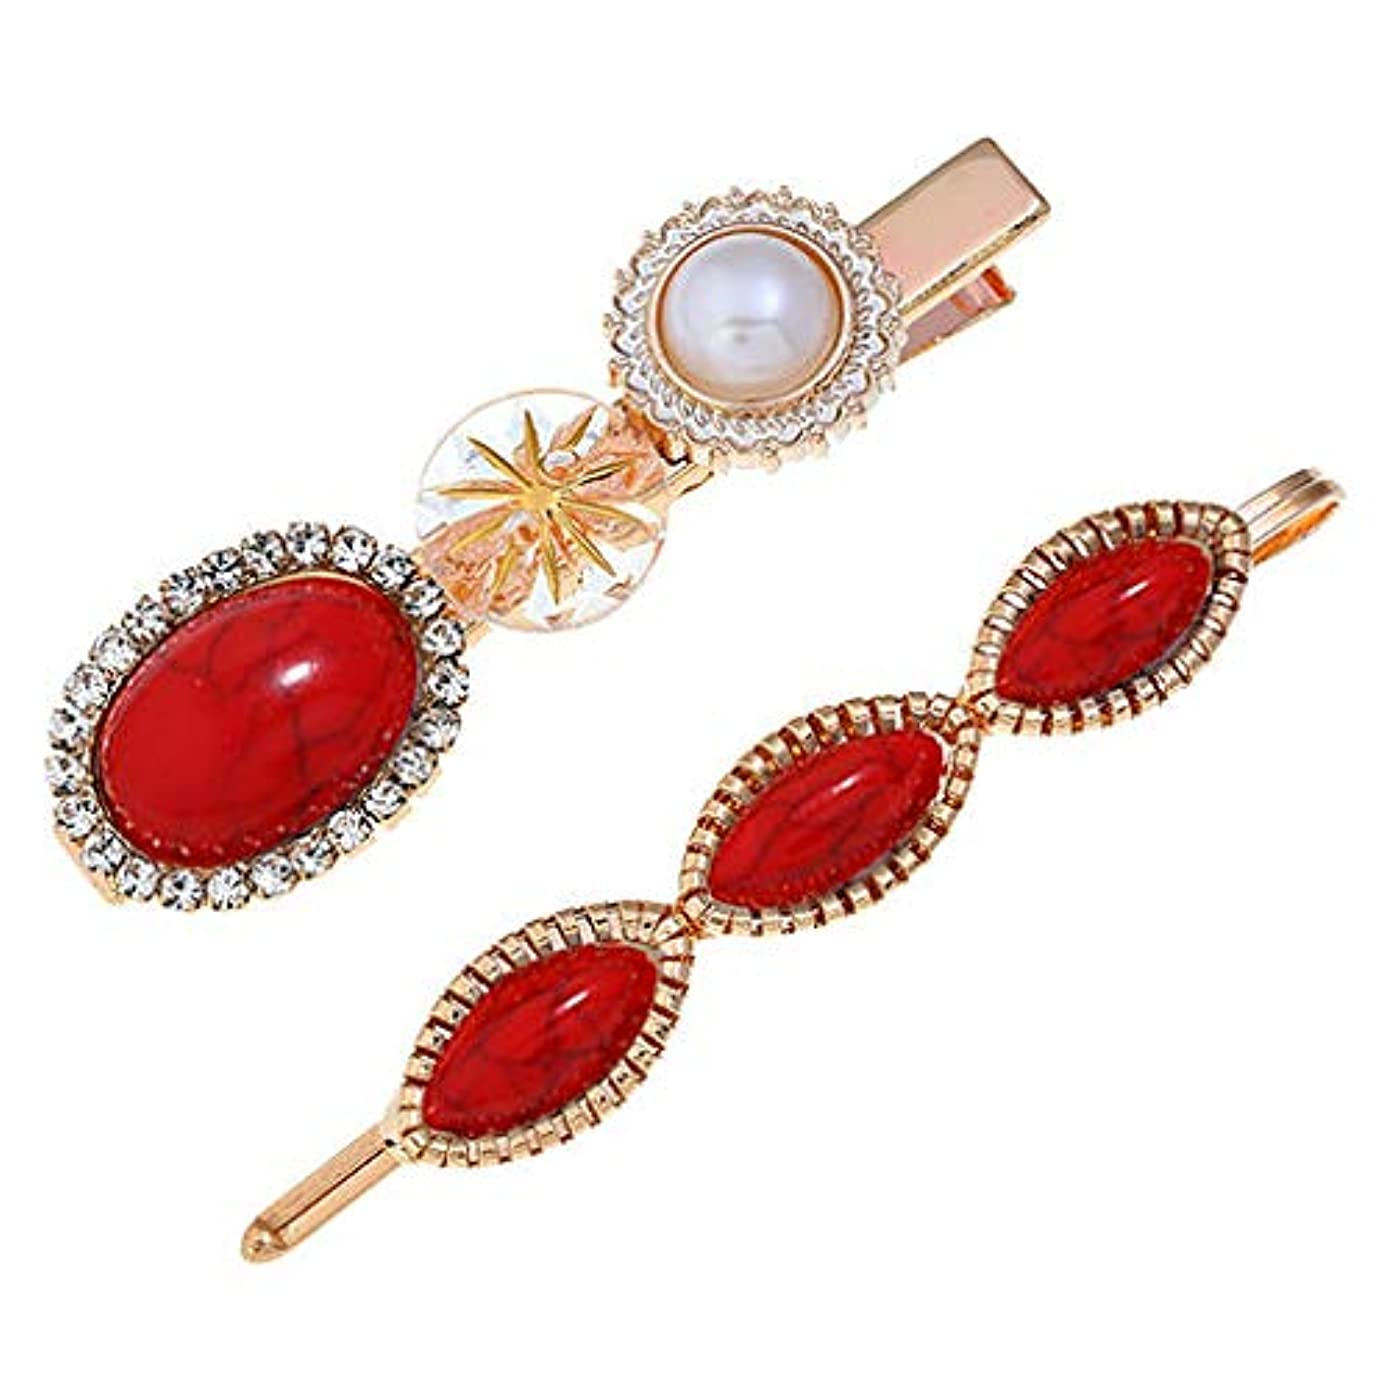 Junshion Women's Fashion Diamond Hair Clip Trendy Sweet Romantic Pearl Button Sen Retro Multicolor Hairpin Girl Jewelry